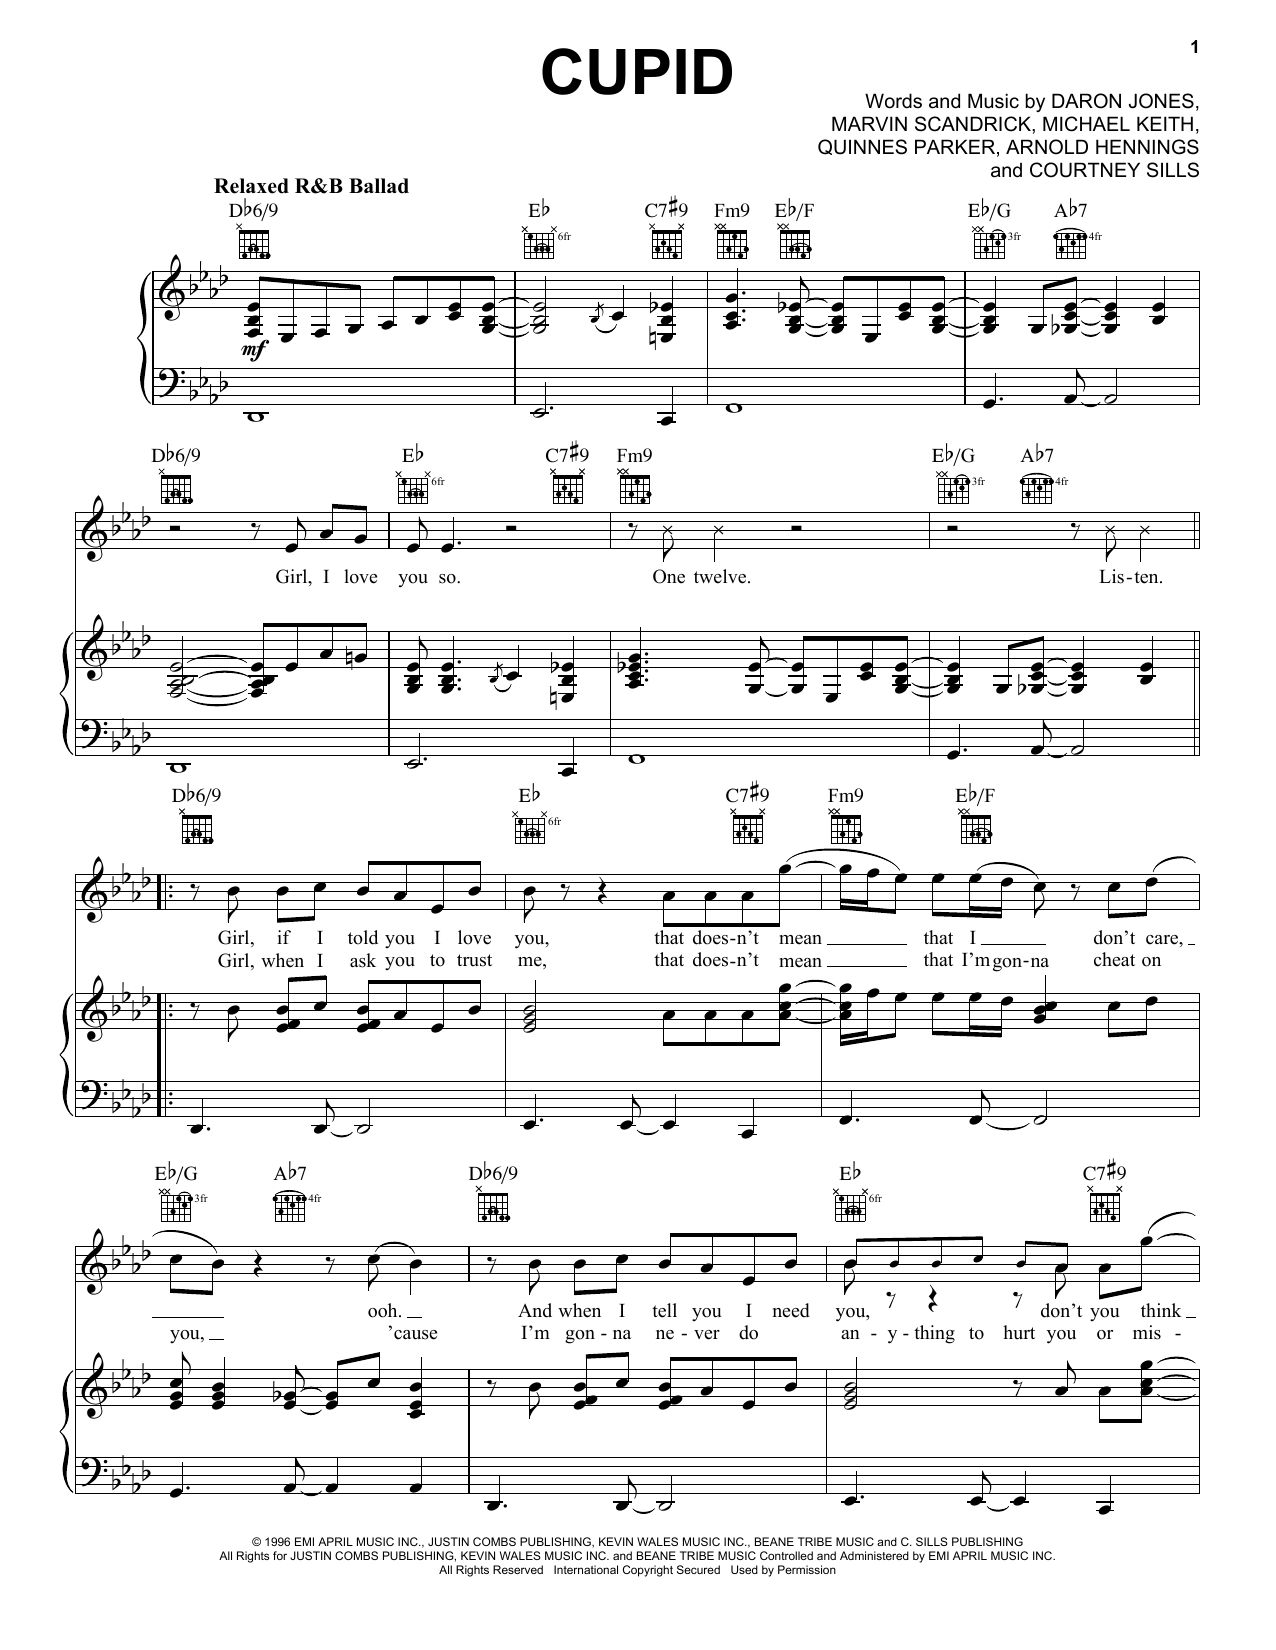 112 Cupid sheet music notes and chords